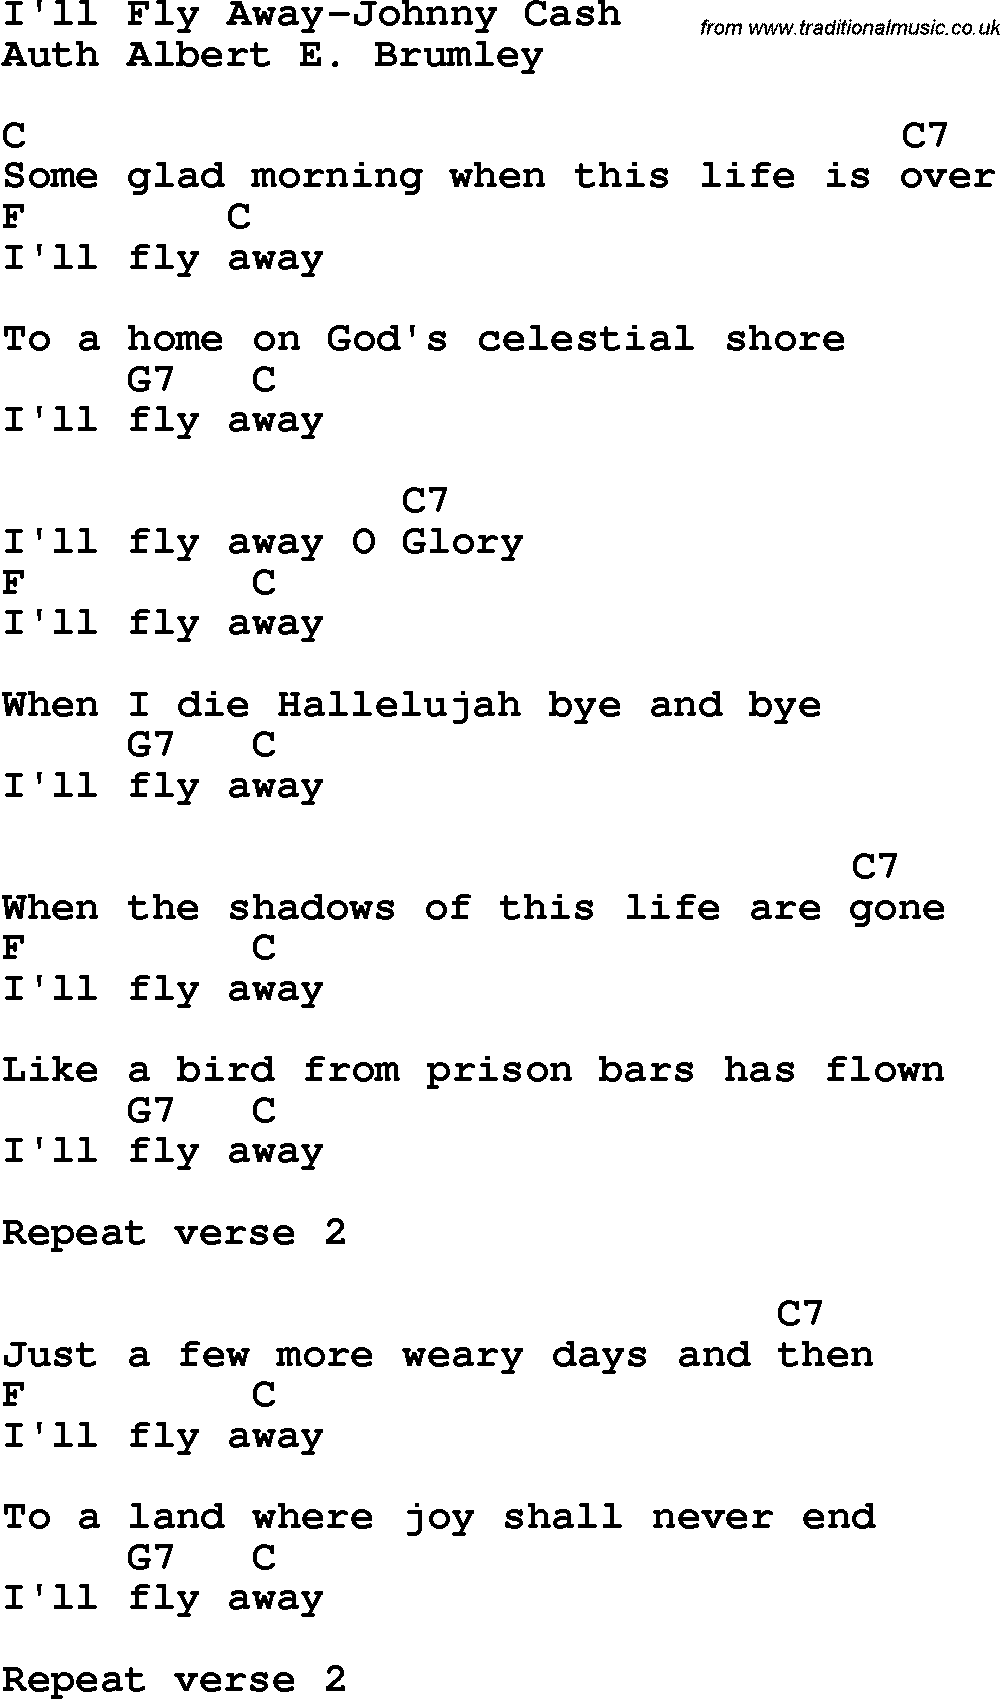 I Fly Away Chords submited images.